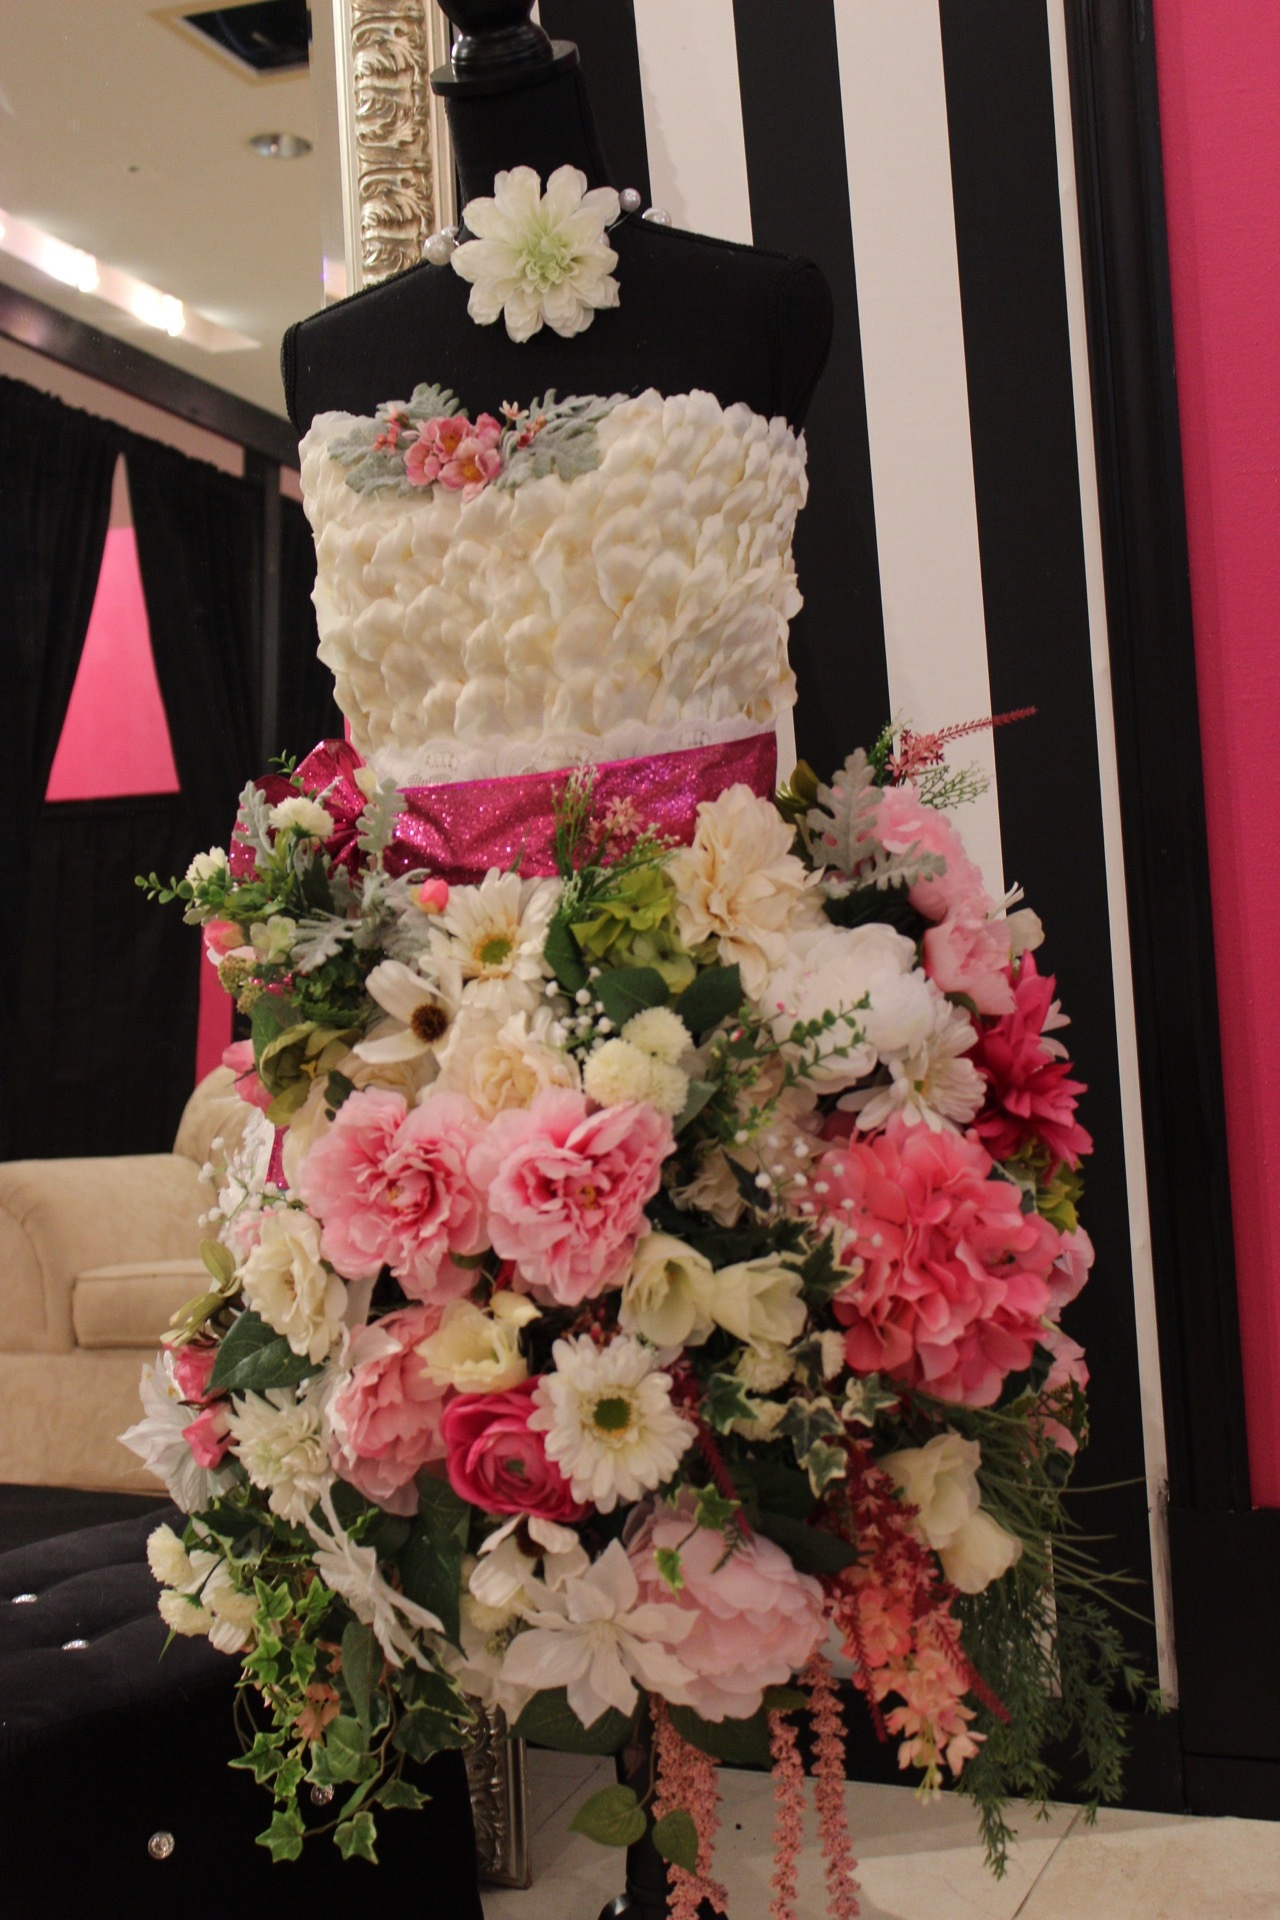 We're obsessed with this floral arrangement that was made to look like a dress. It was perfect for the occasion!